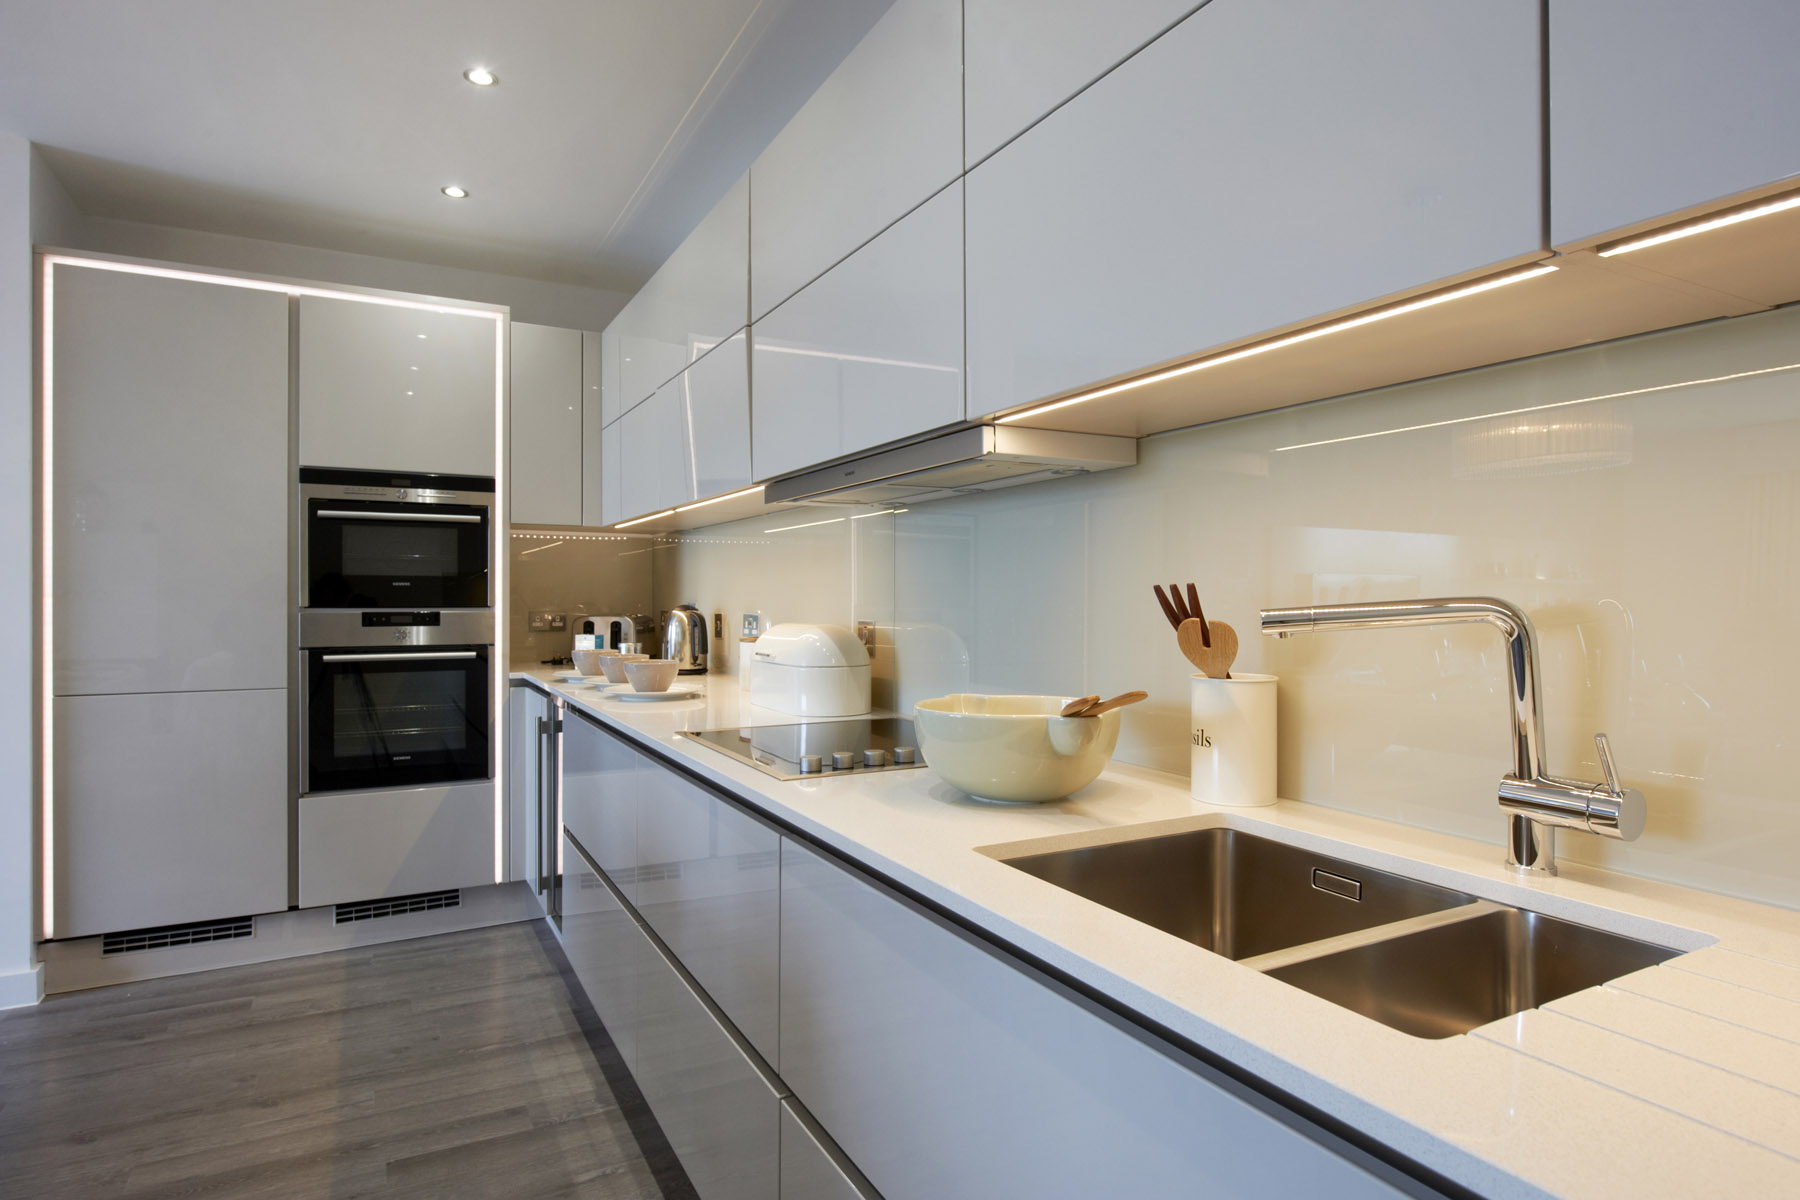 3 Bed Apt Kitchen. 5 bed houses   Plots 275   276   Taylor Wimpey